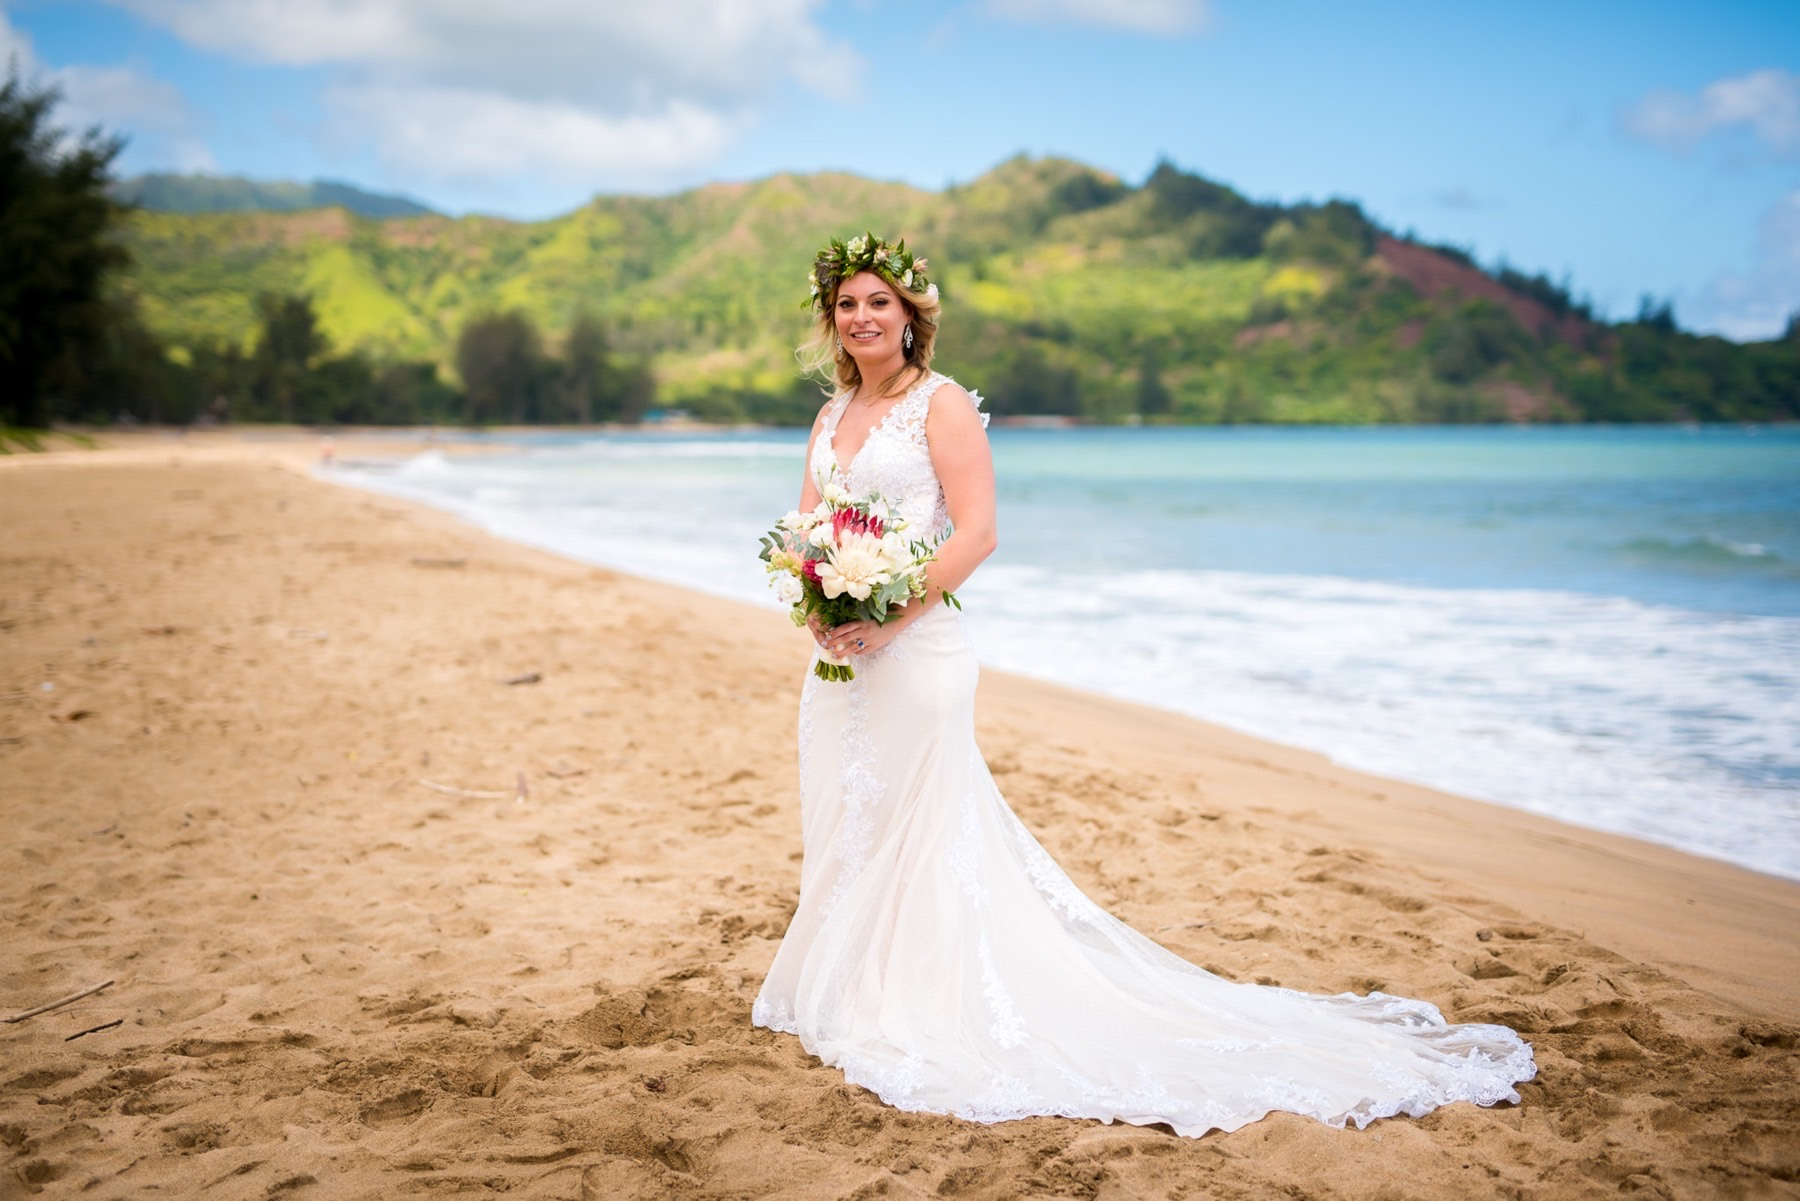 Bride with flowers on the beach.